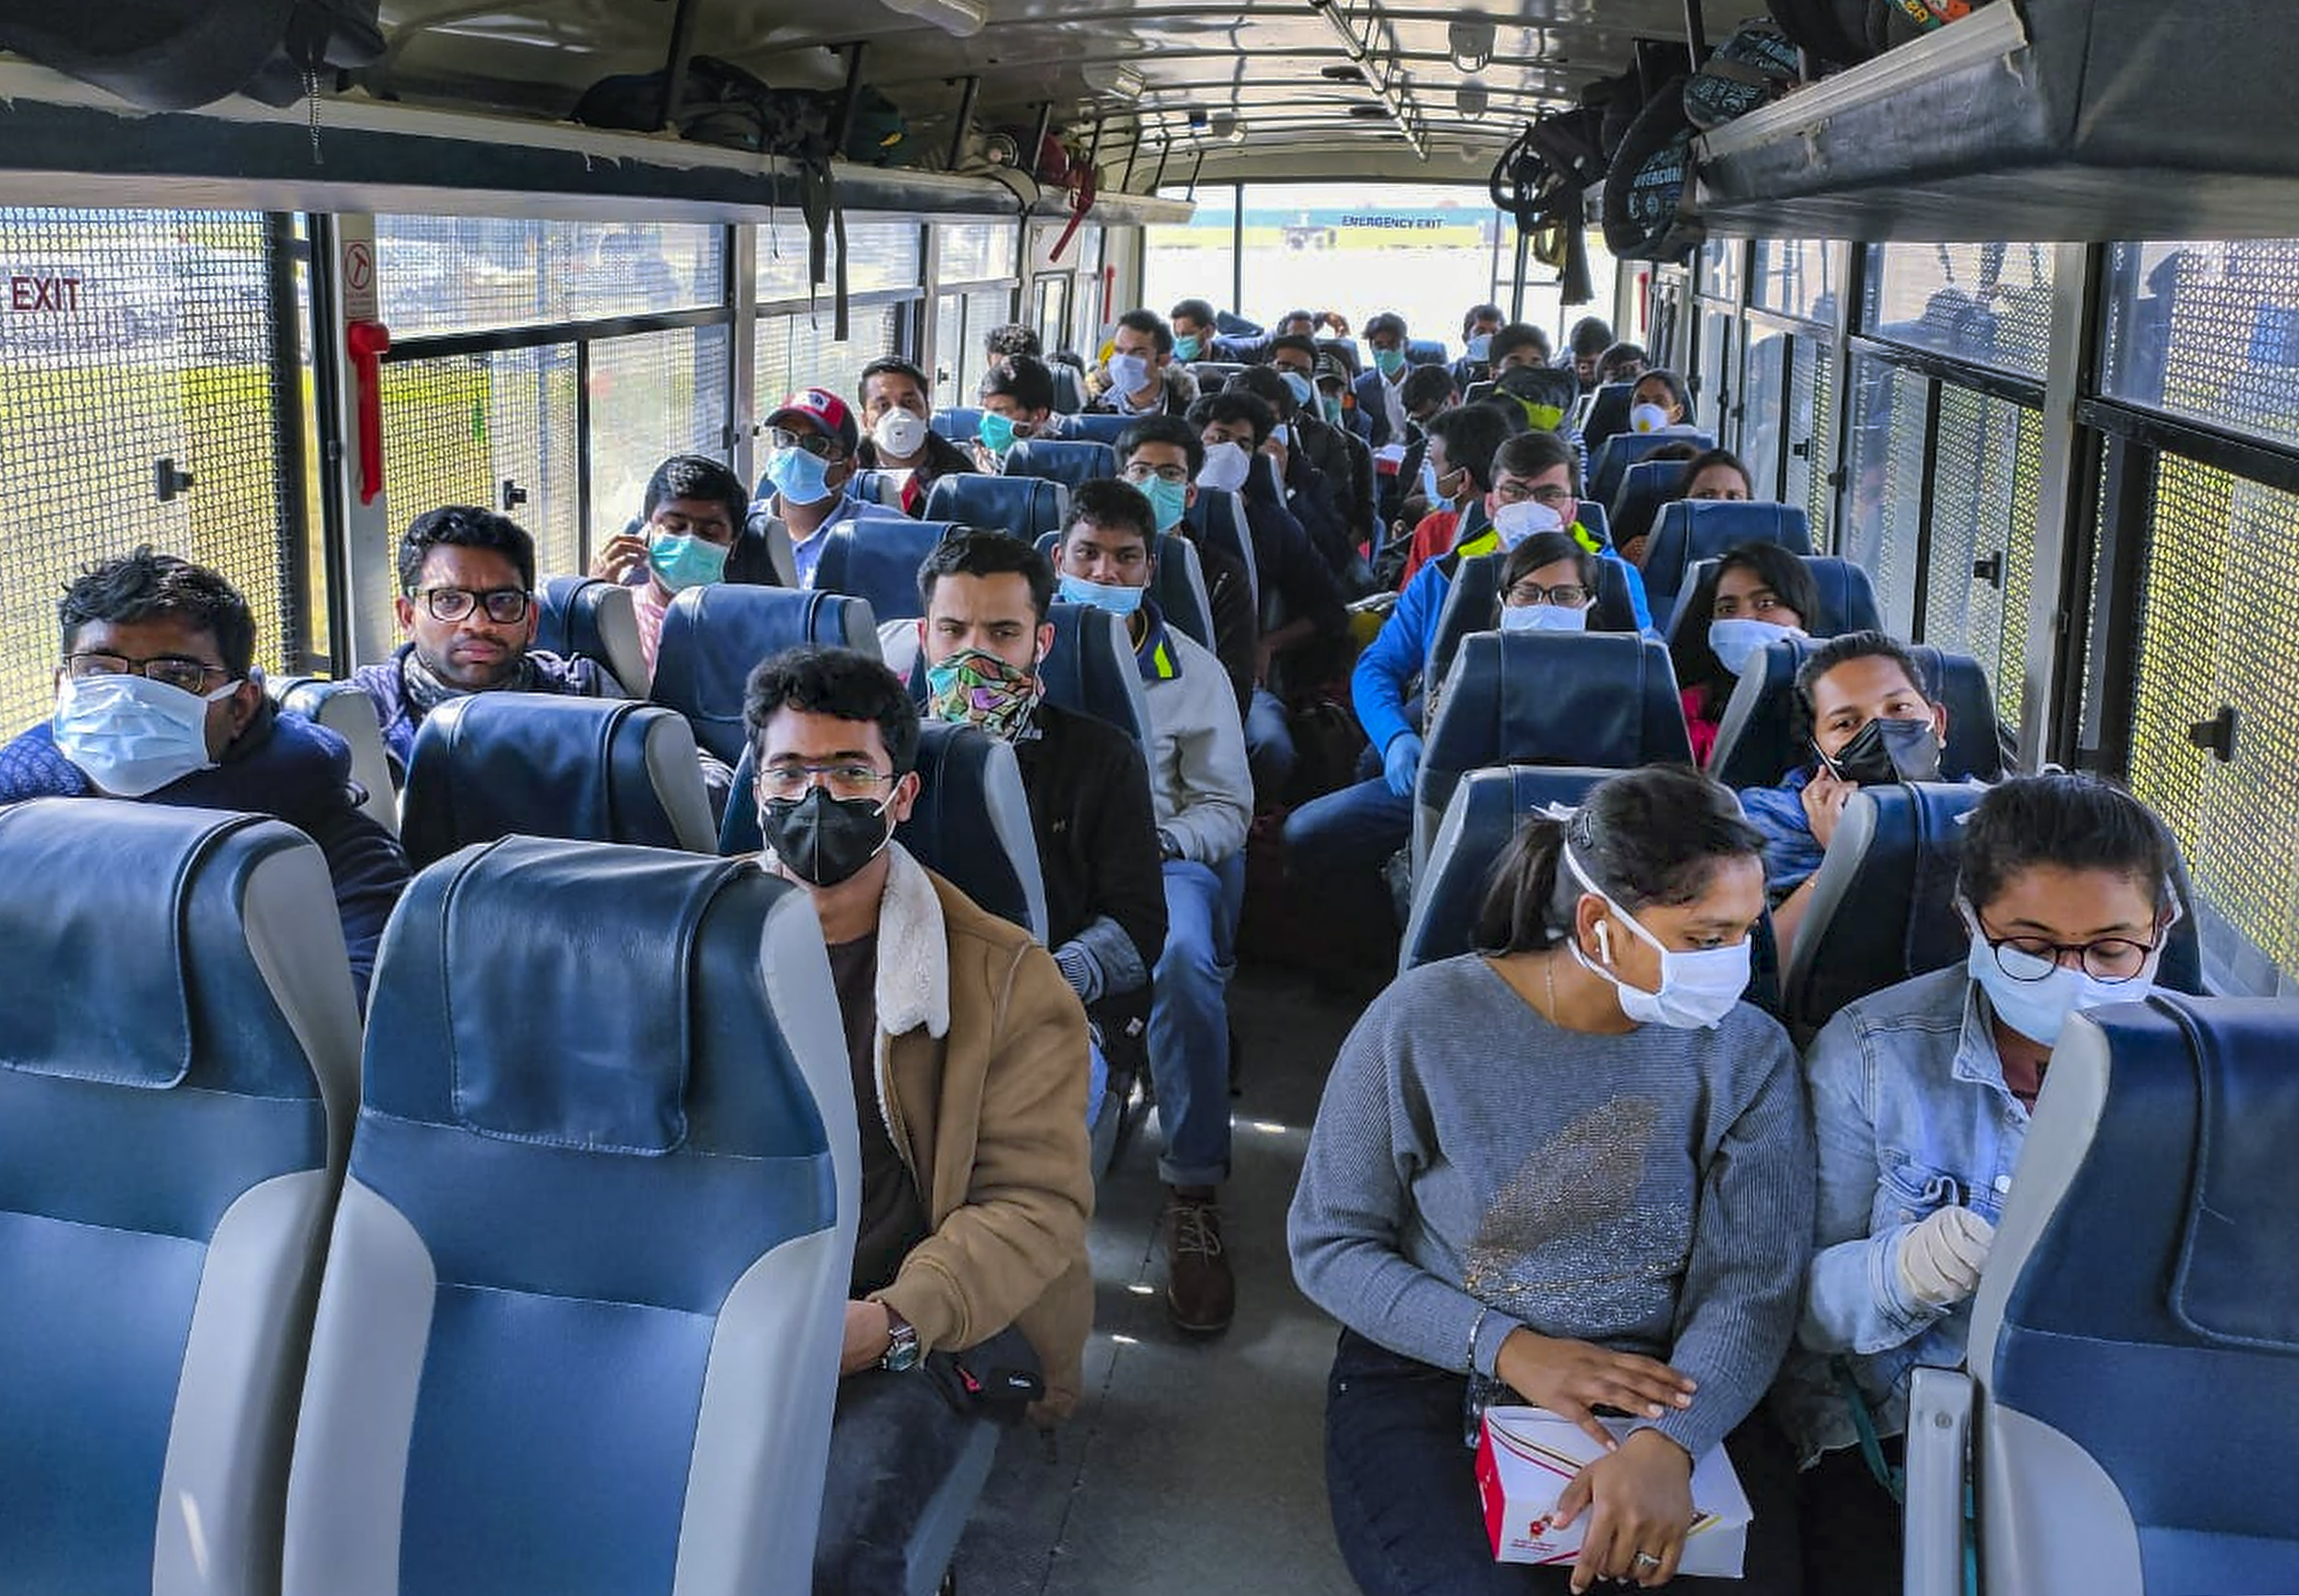 In this handout photo provided by ITBP, evacuees airlifted from Rome, Italy in the wake of coronavirus pandemic, on their arrival at IGI airport, before being sent to a quarantine facility in New Delhi, Sunday, March 22, 2020